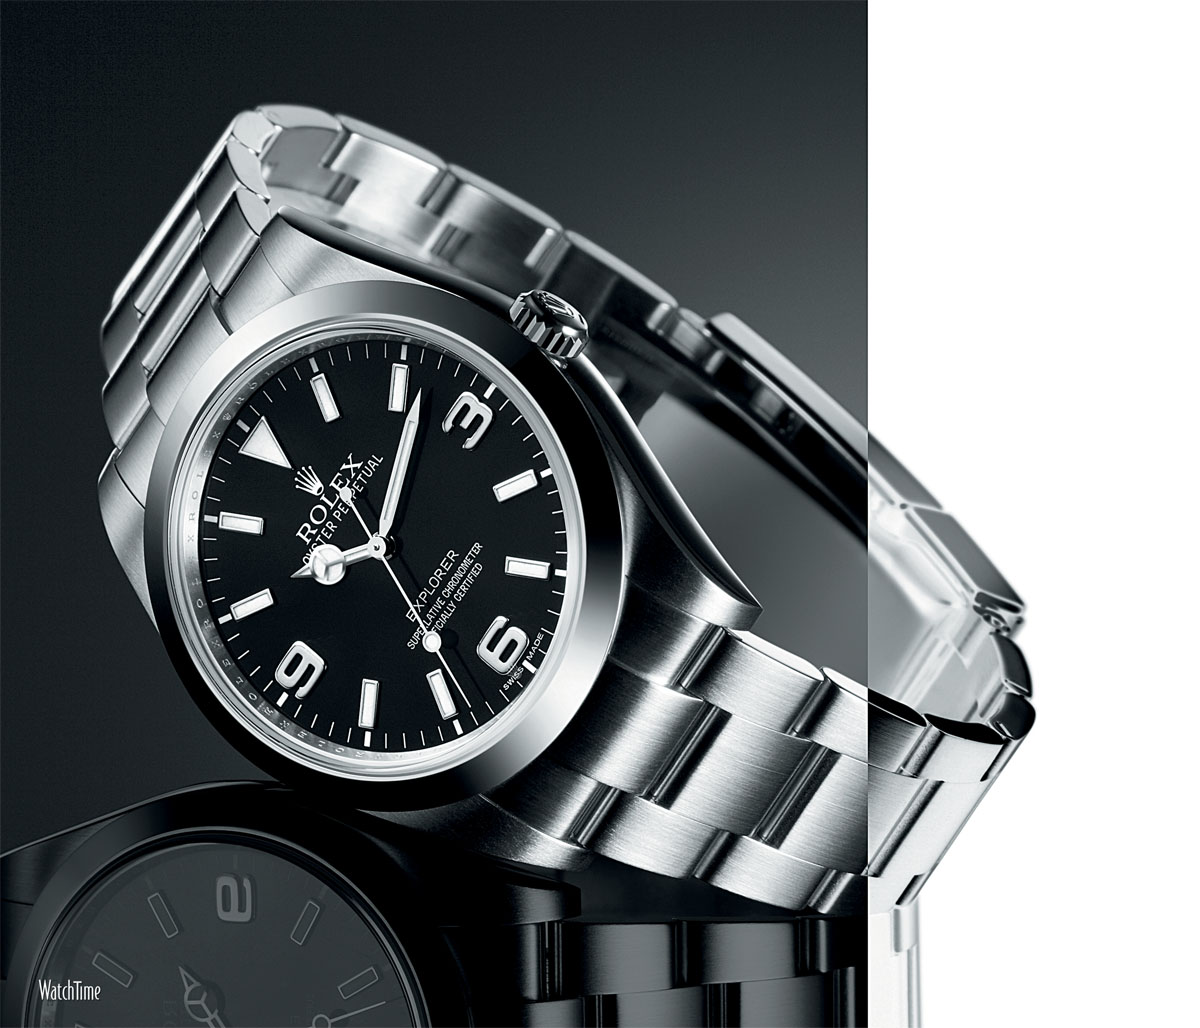 WatchTime Wednesday: The Rolex Explorer 1 39mm ref. 214270, review of an icon (specs and price)